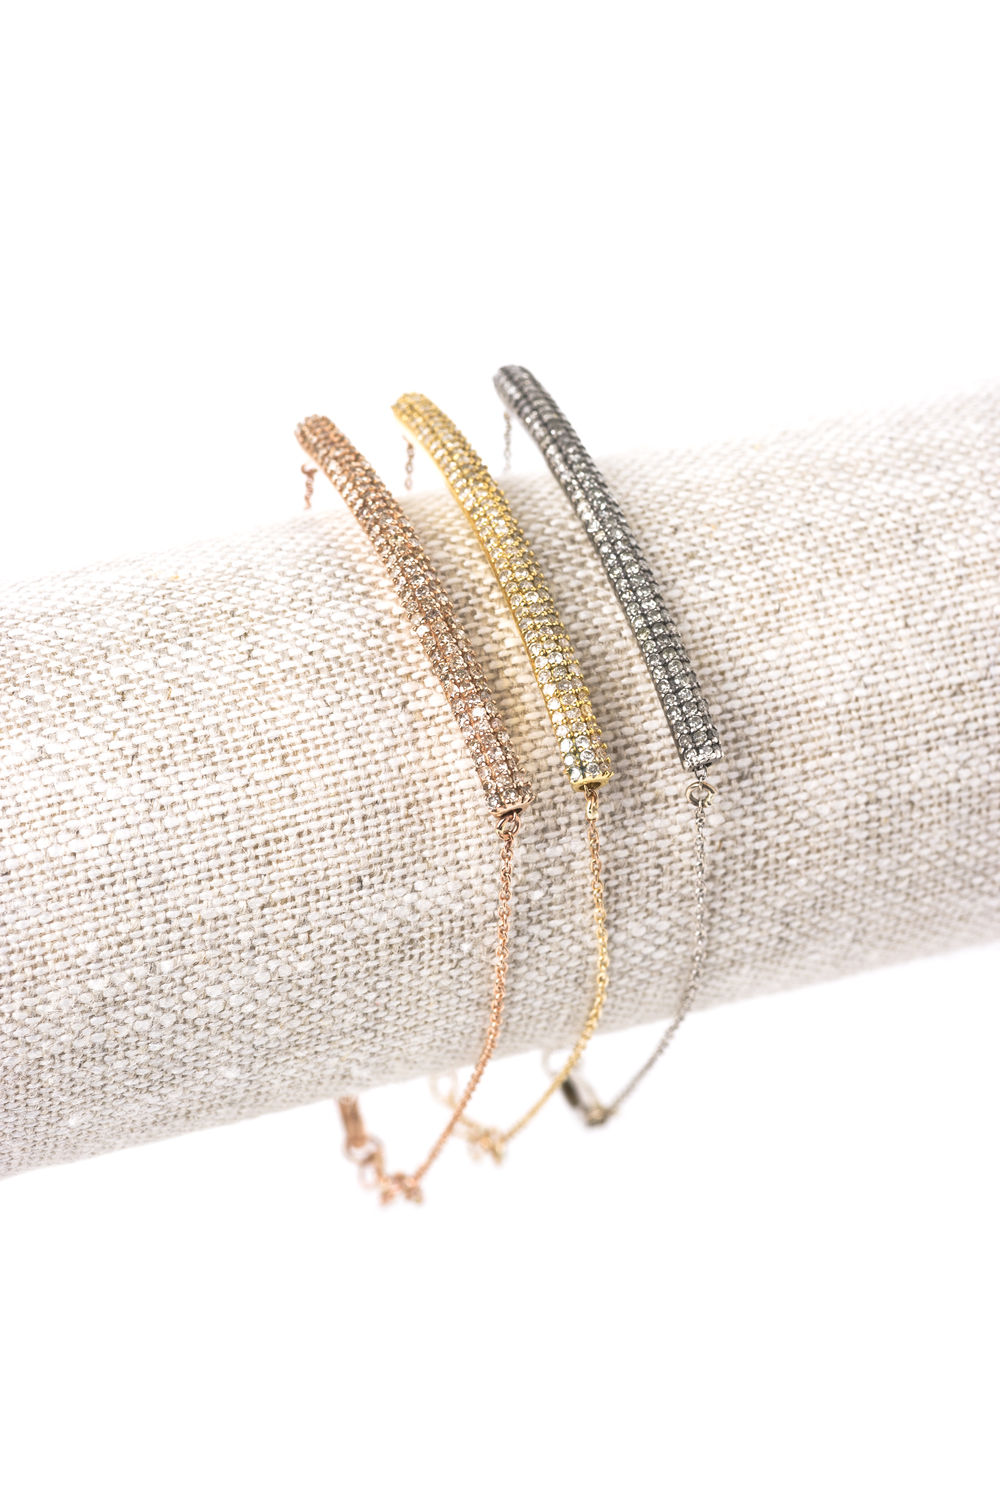 128 three curved bar bracelets.jpg